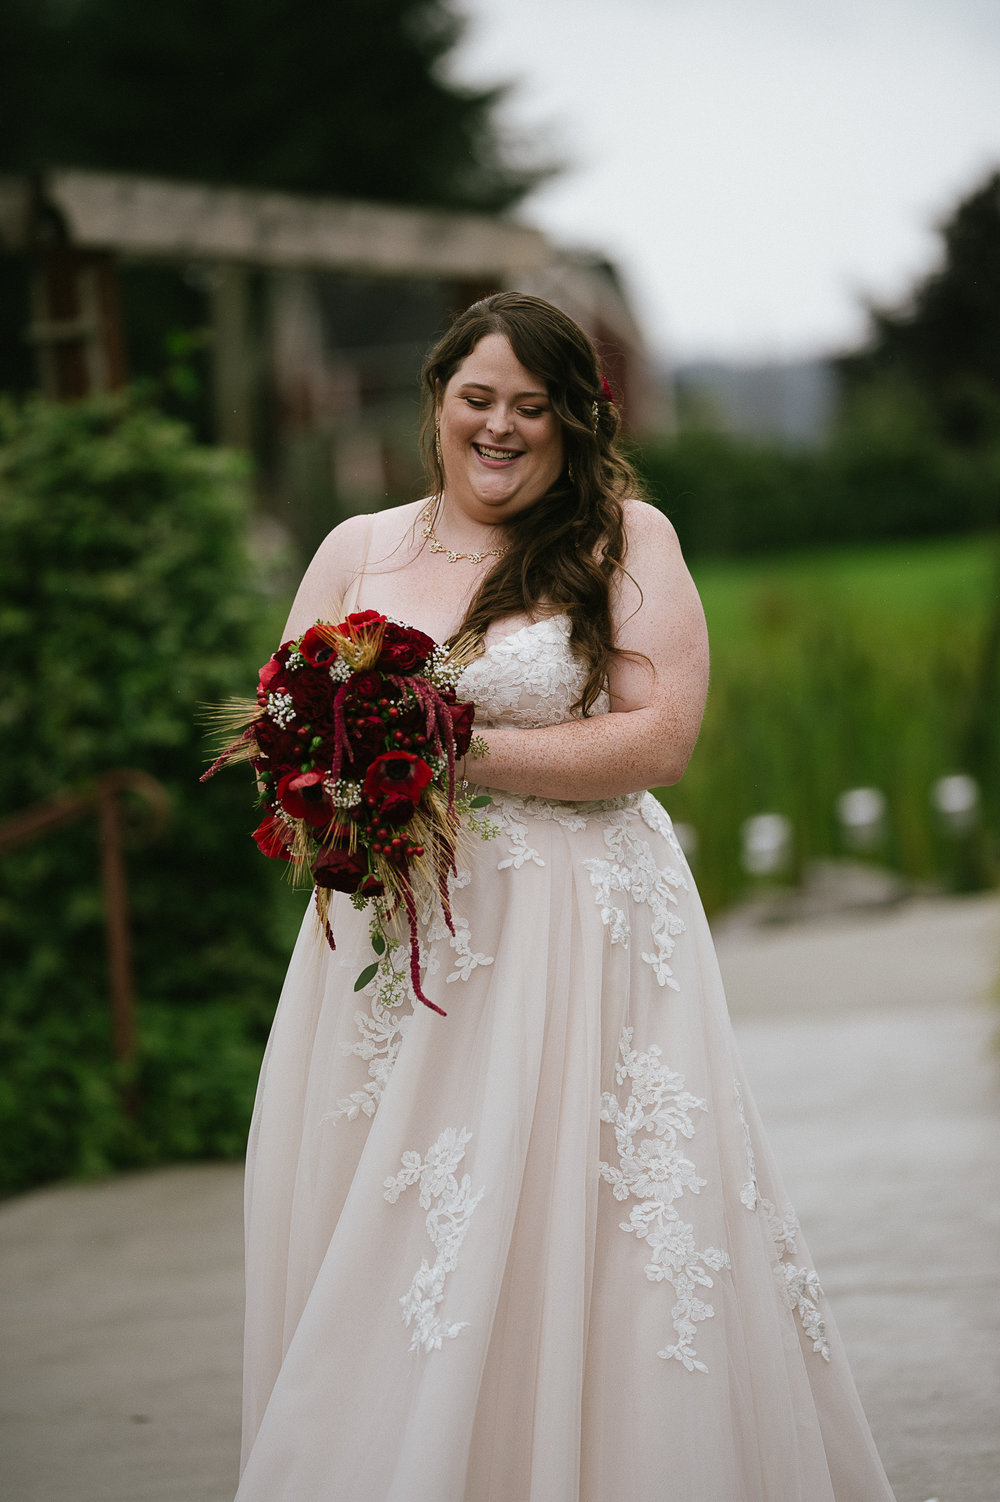 Swan Trail Farm Wedding_Sarah Schurman + Brian Skadan_Snohomish Wedding_Kelsey Lane Photography-5692.jpg